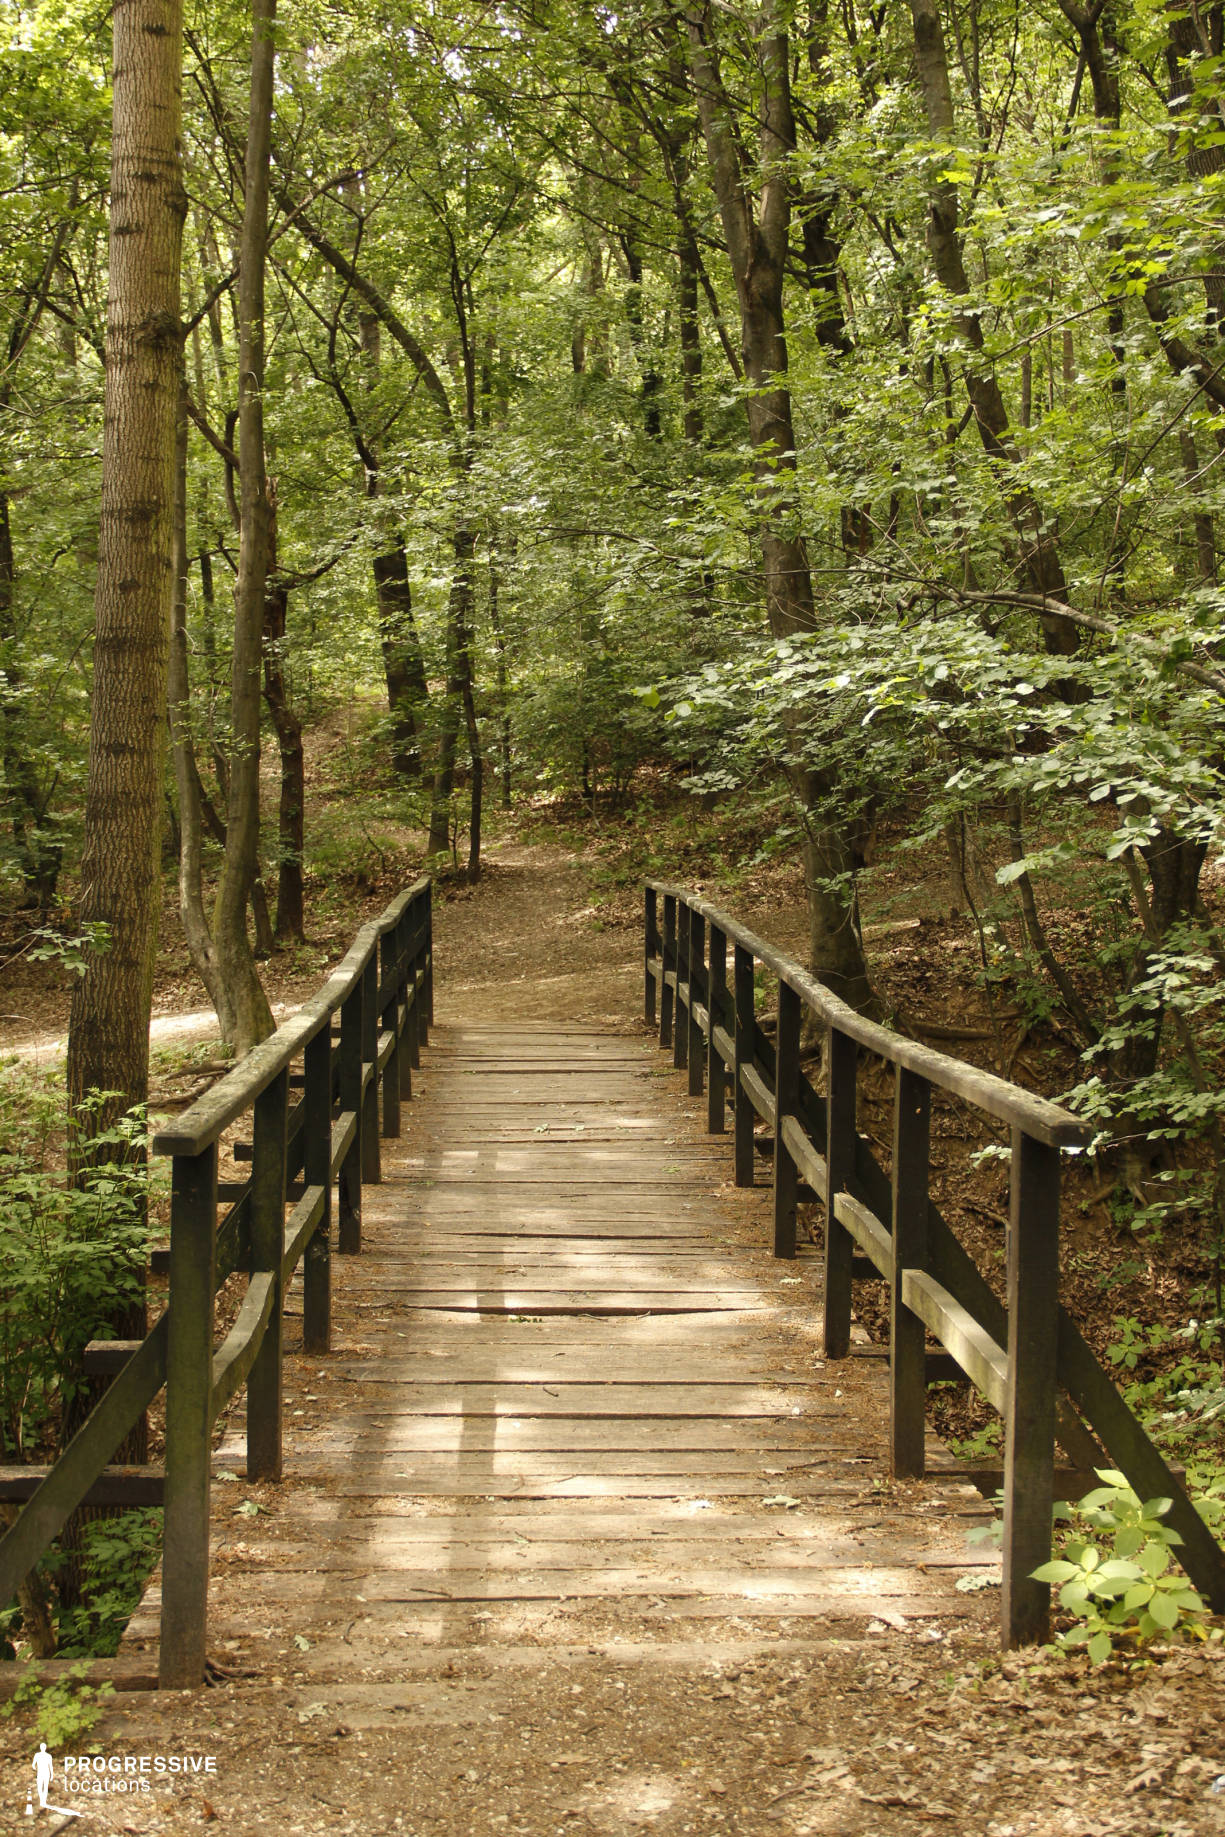 Locations in Hungary: Wooden Bridge, Huvosvolgy Forest